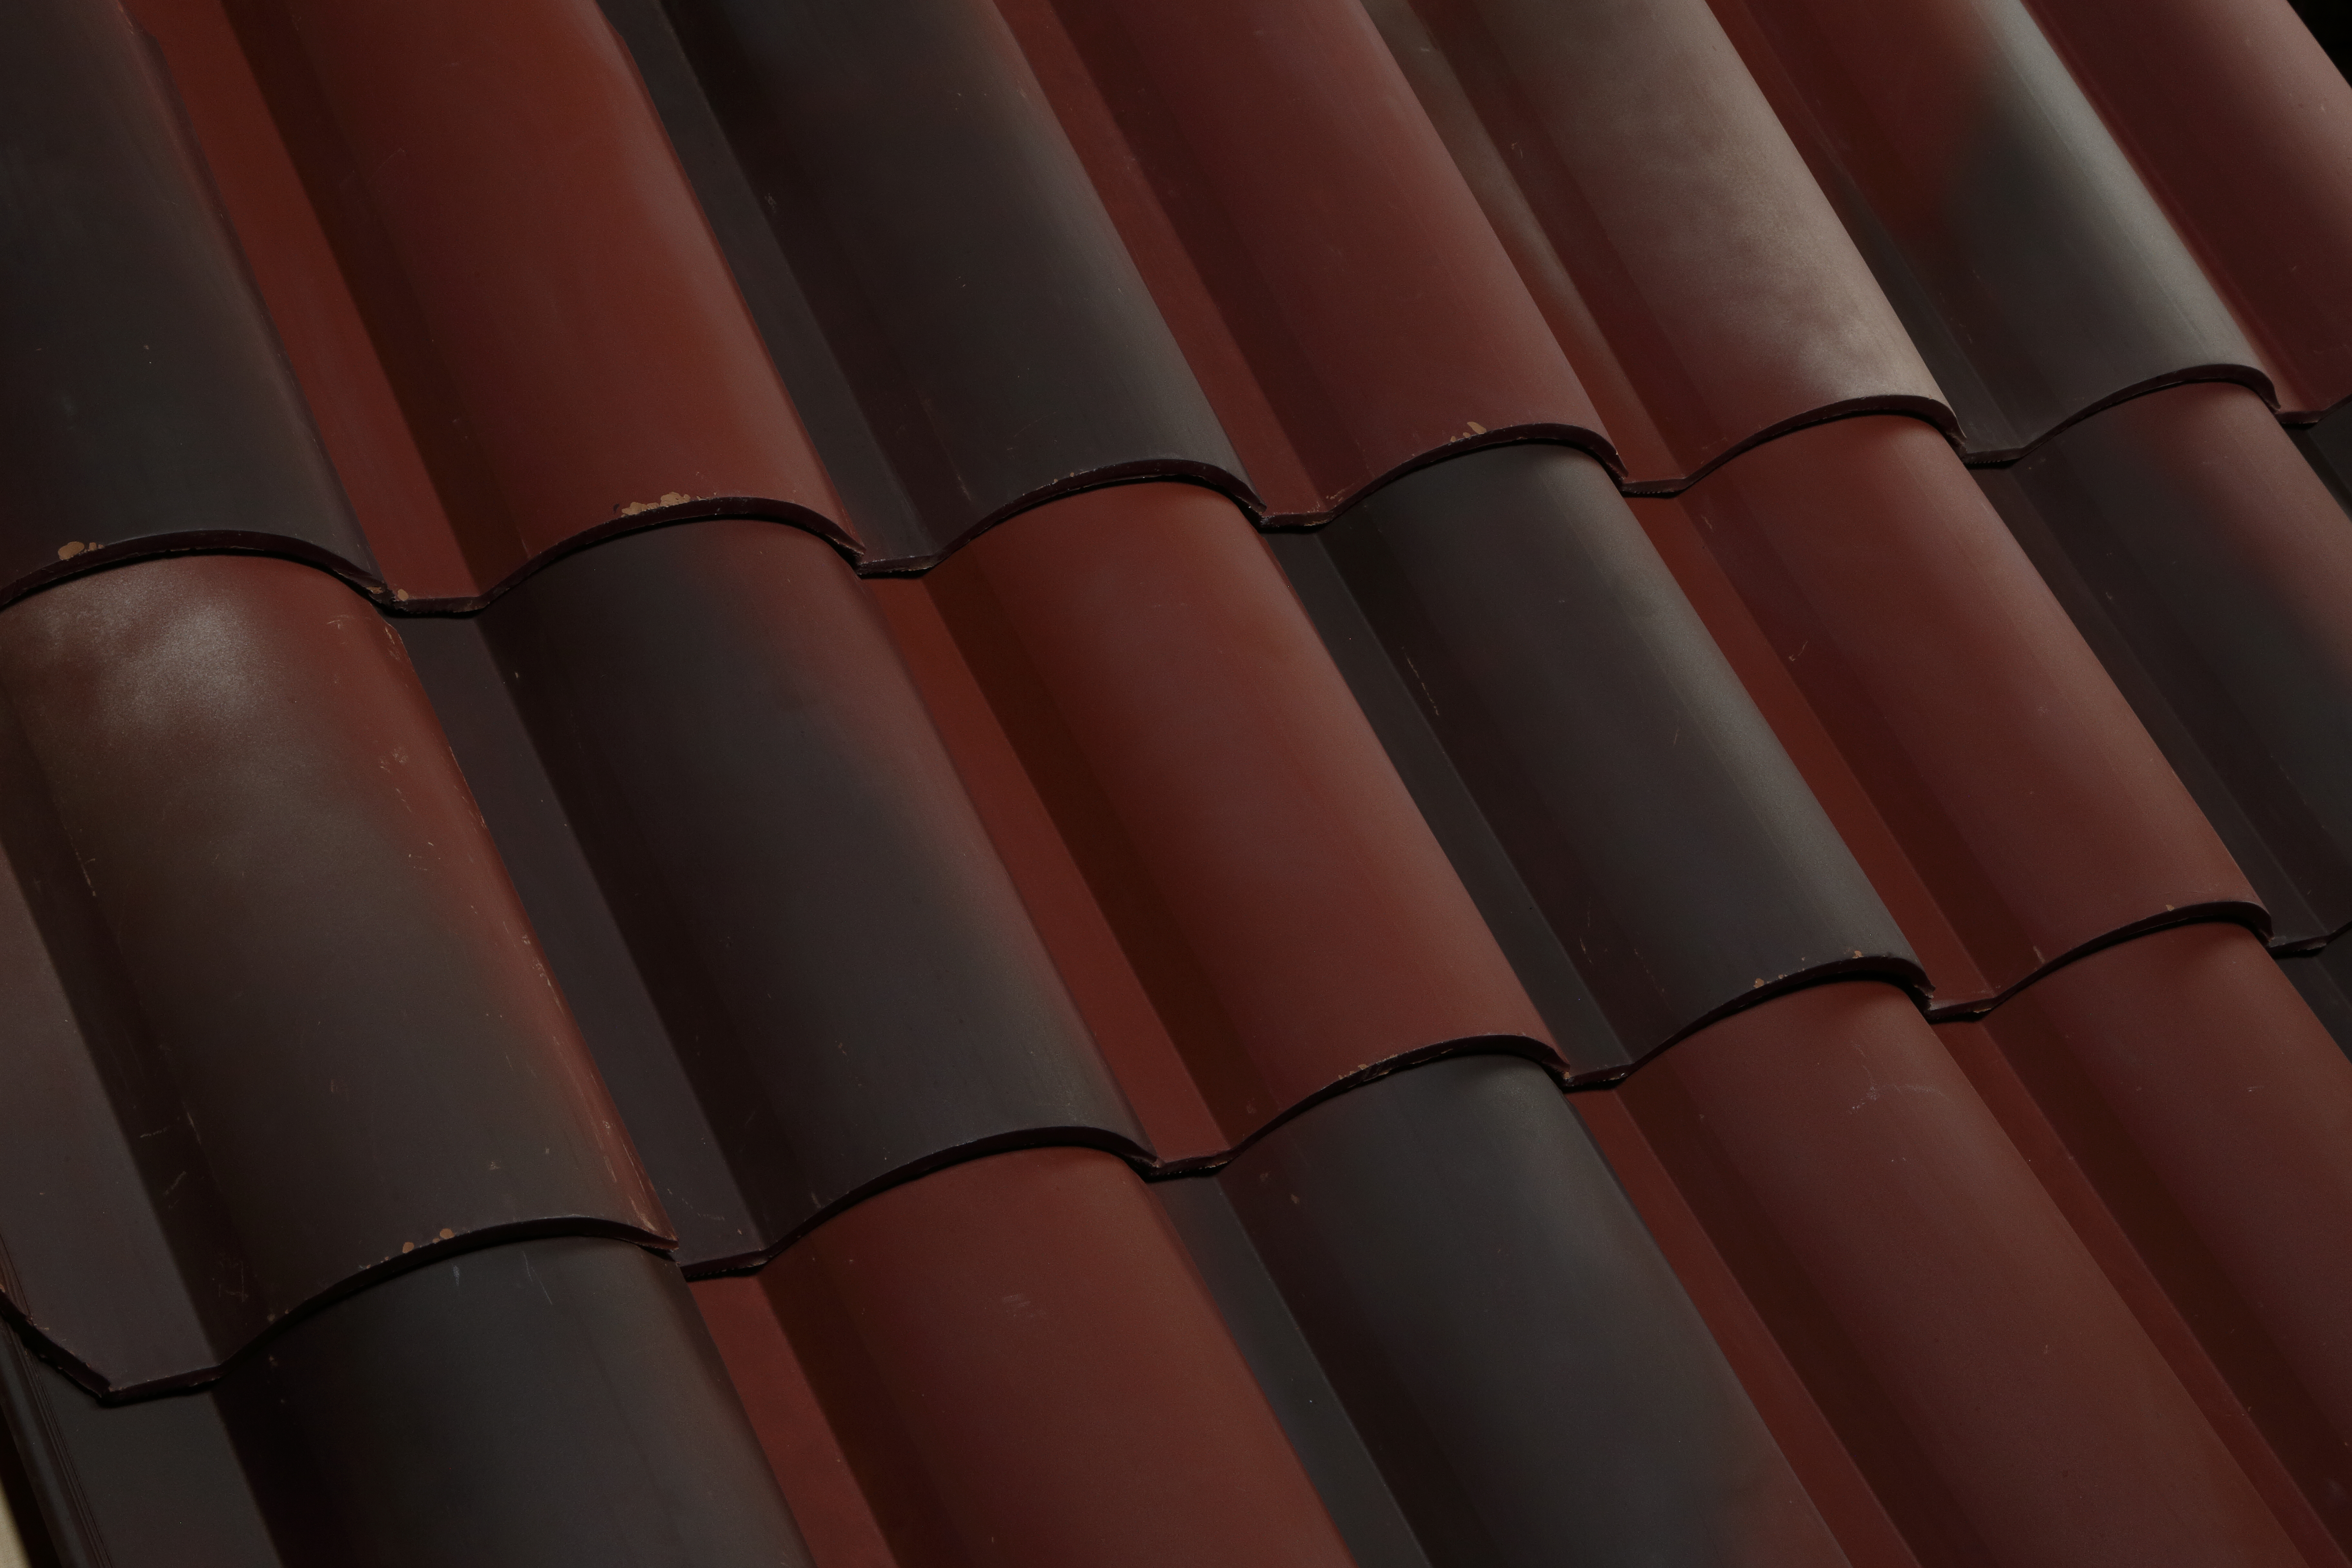 Simulated clay tile roof.